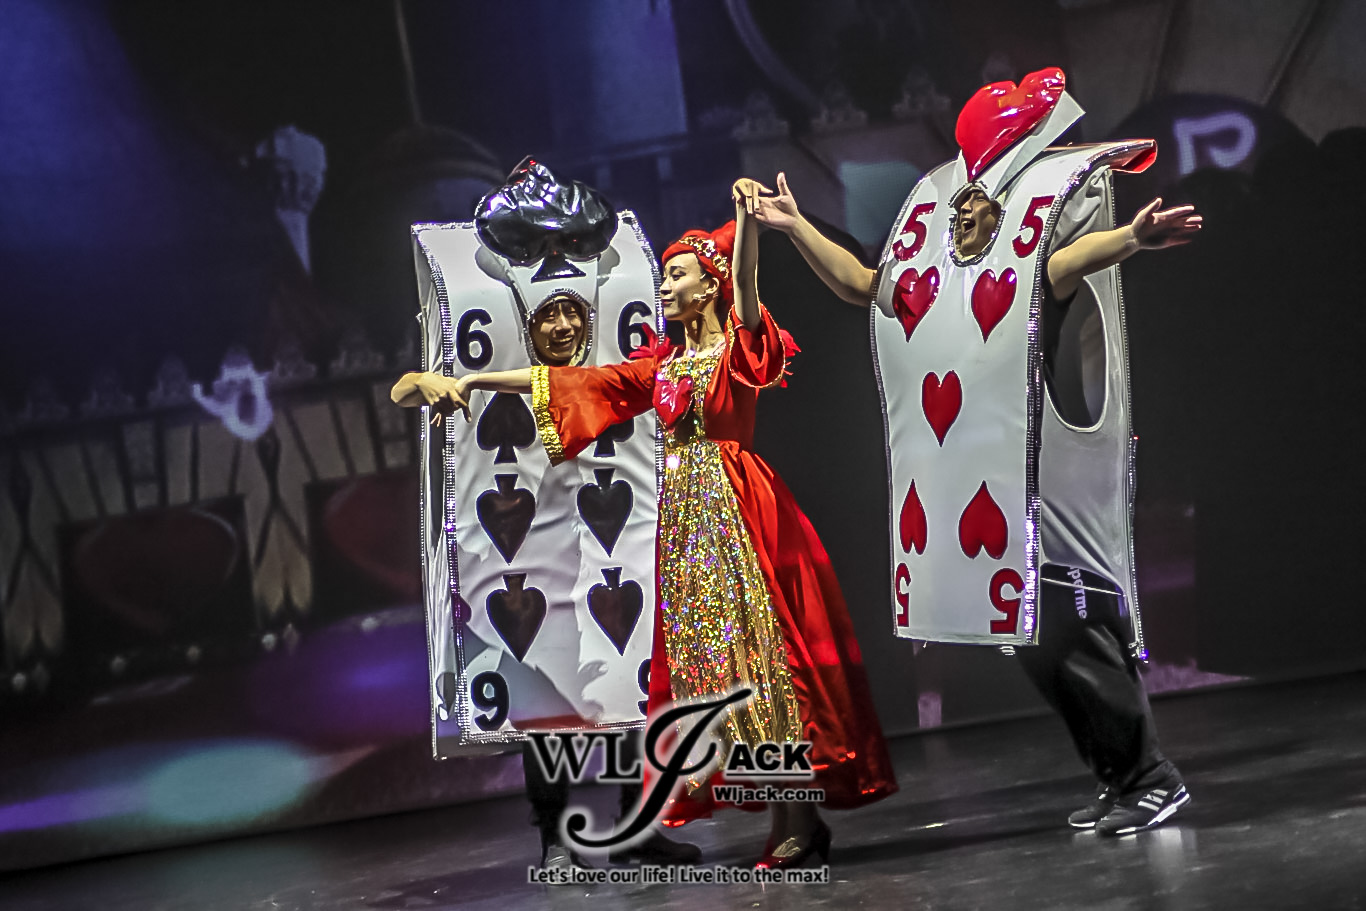 Coverage] Alice in Wonderland, The Musical Show @ Genting